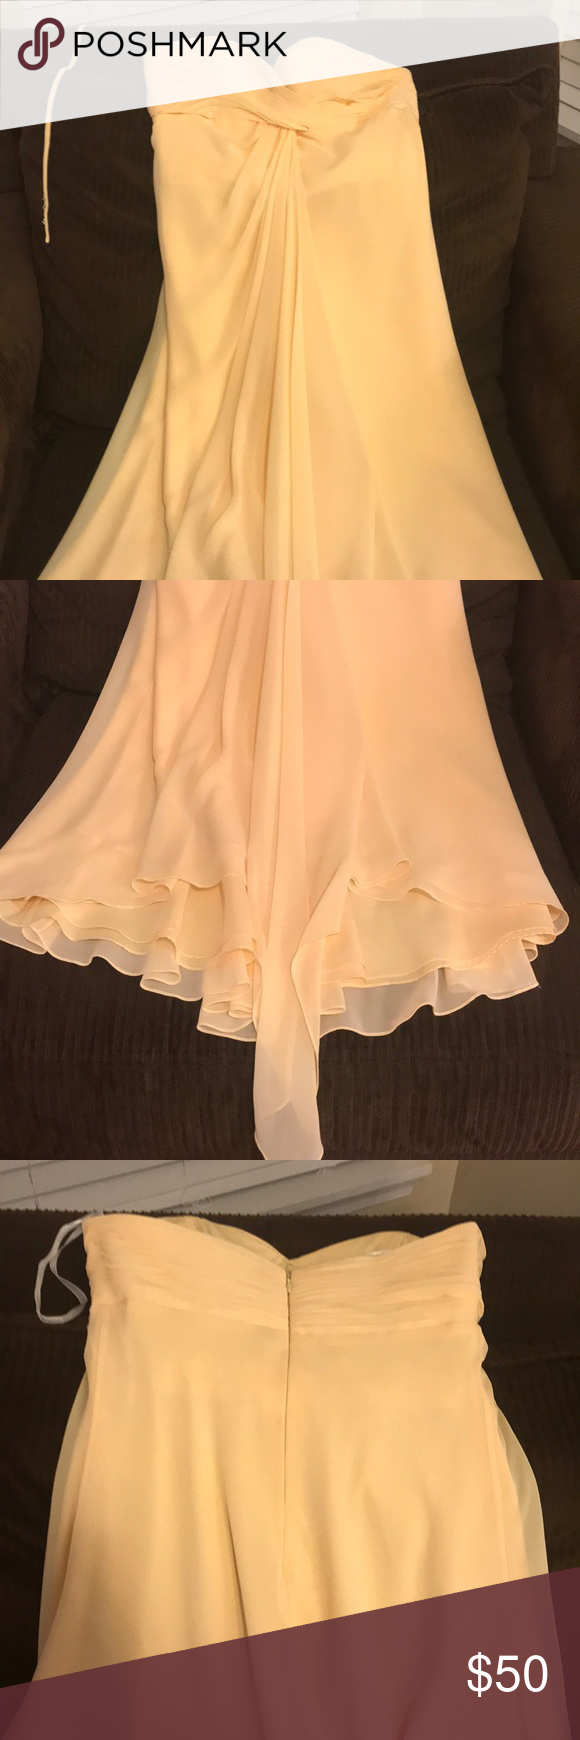 Cute dress for any occasion worn only once occasion wear yellow